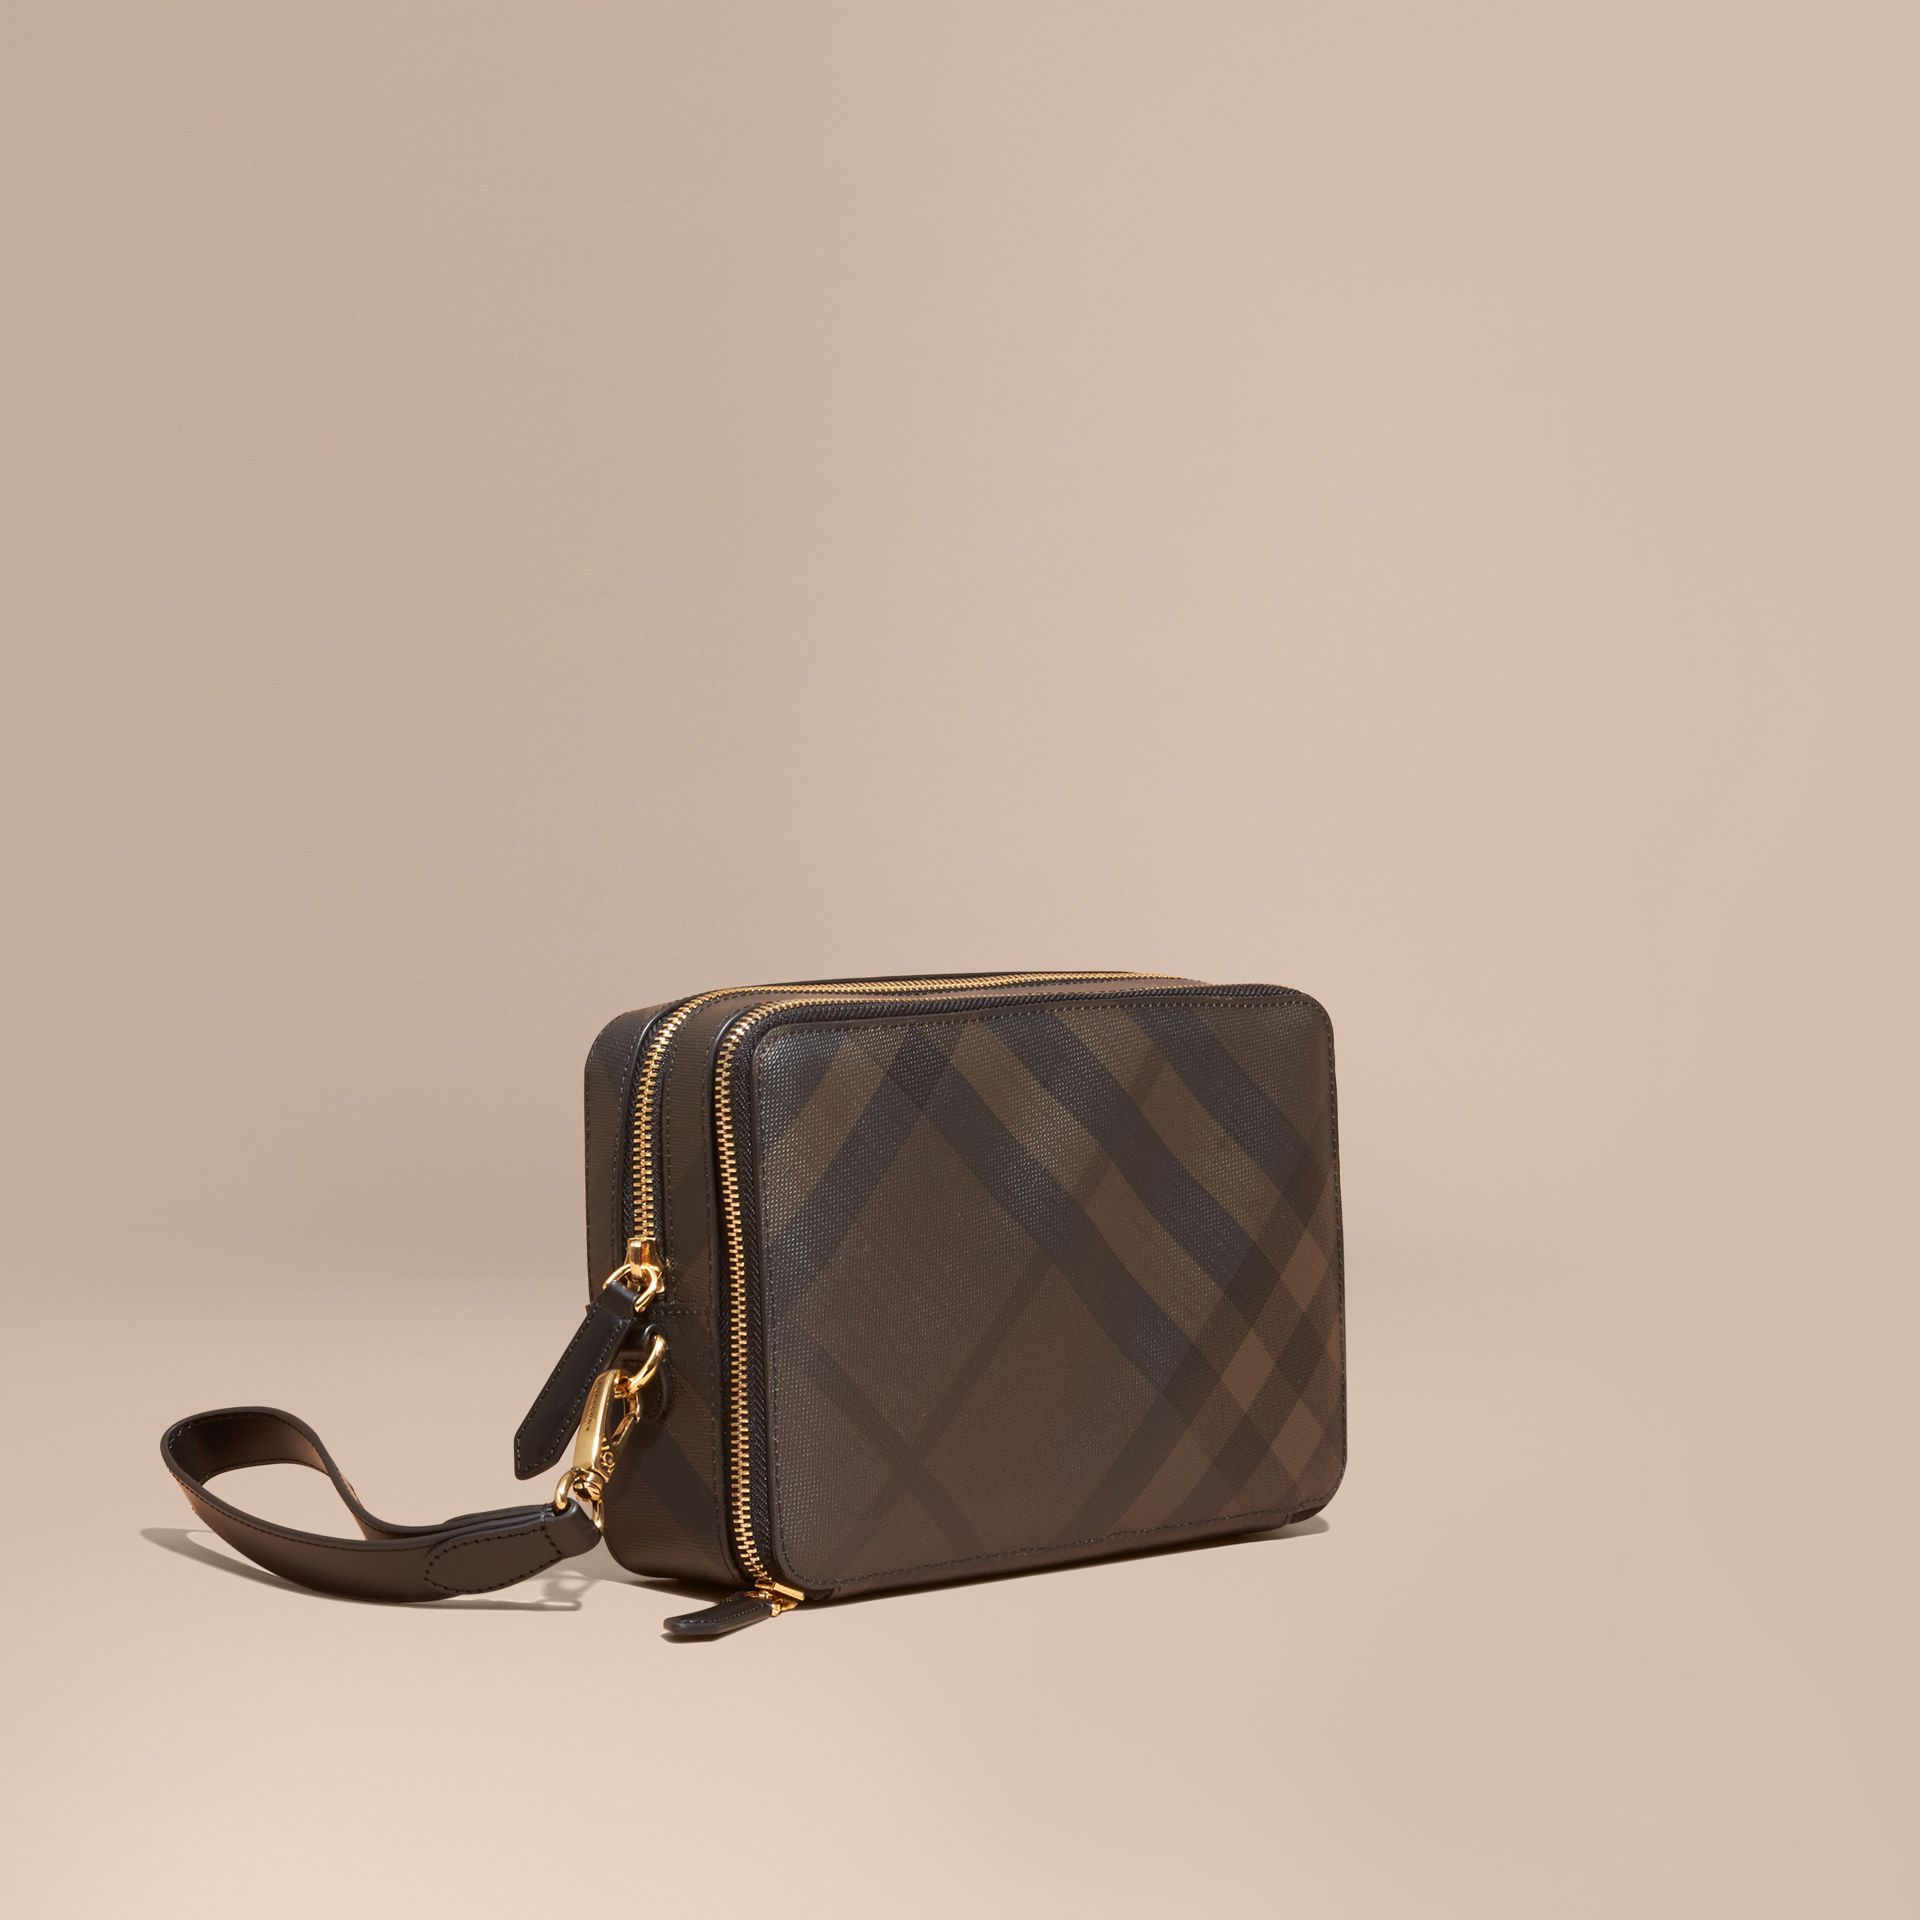 Leather-trimmed London Check Pouch in Chocolate/black - Men | Burberry United States - gallery image 1